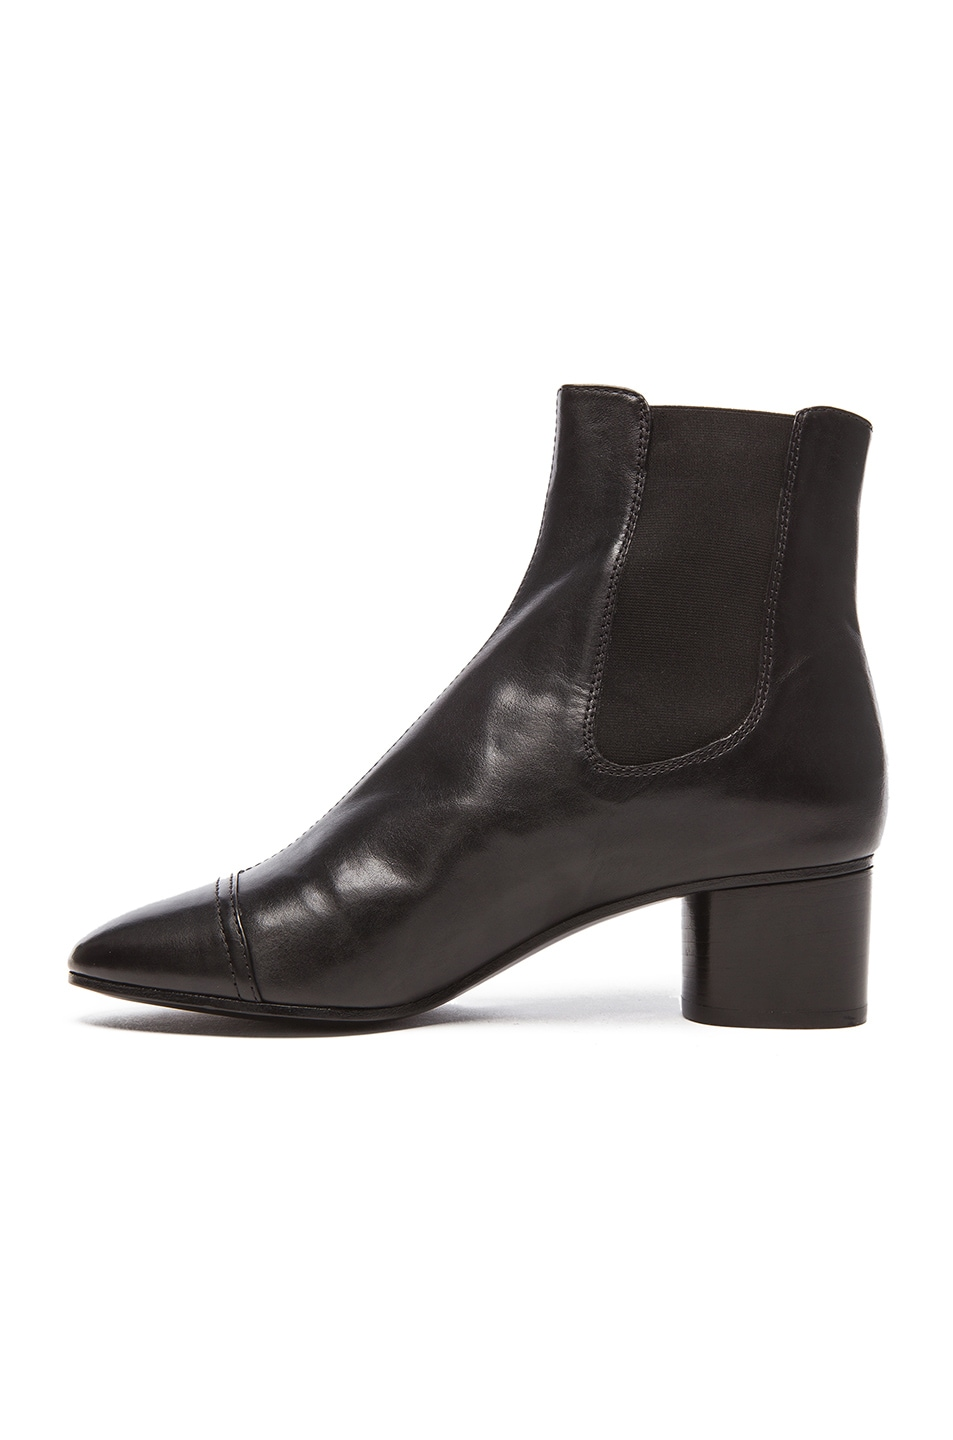 Image 5 of Isabel Marant Danae Chelsea Leather Boots in Black